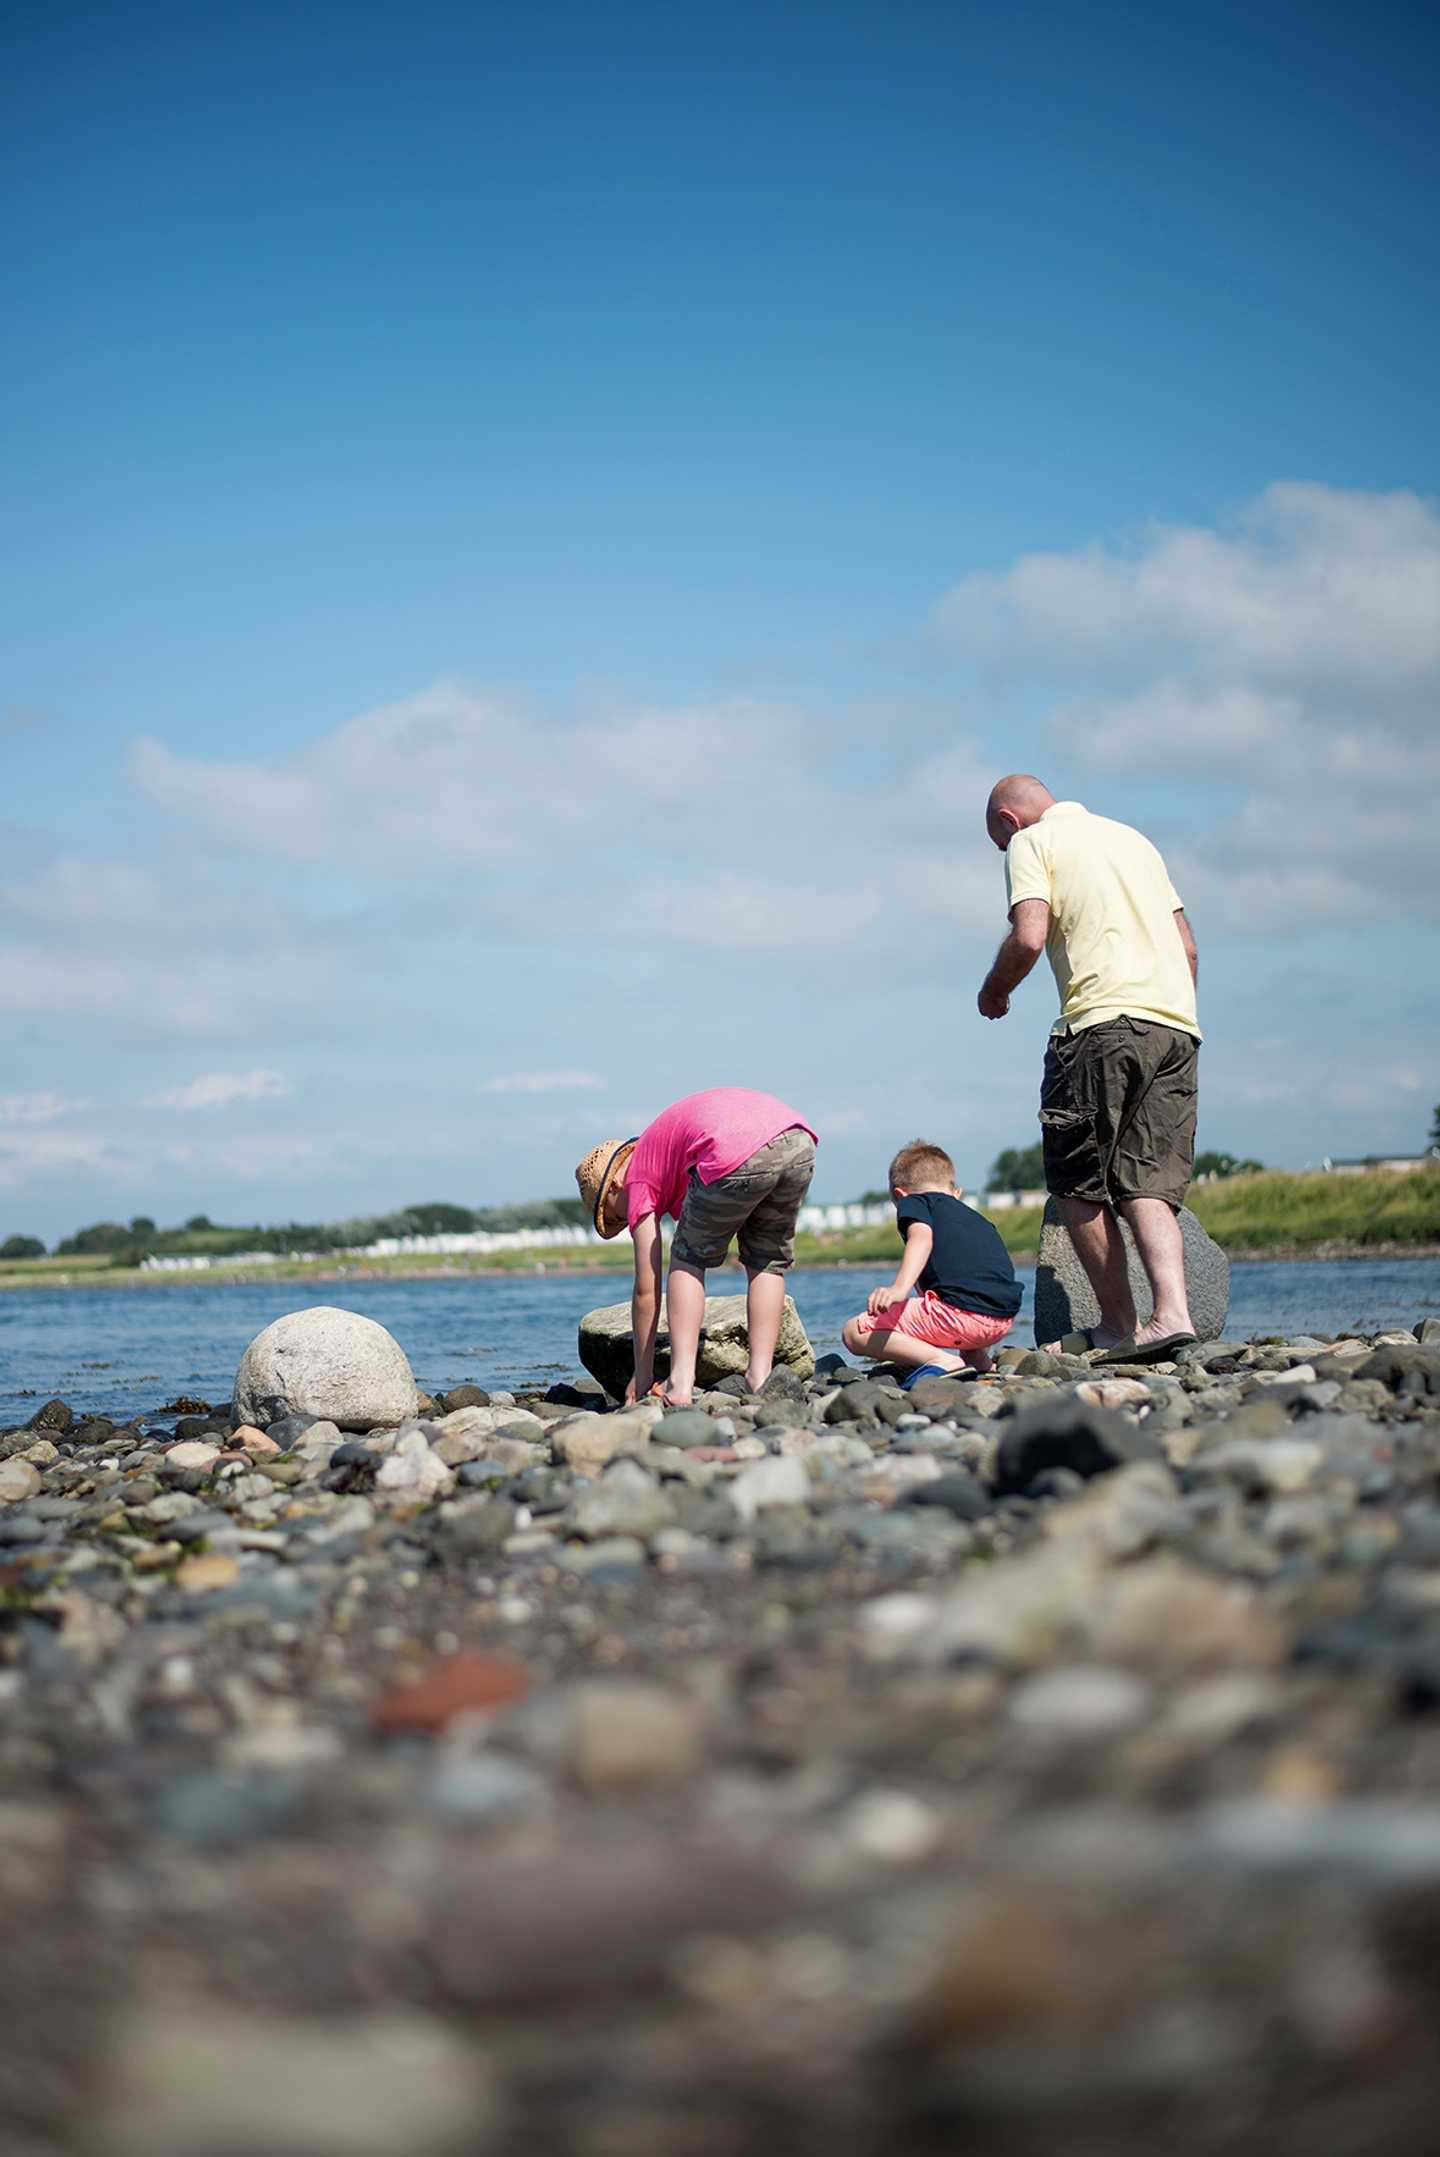 A family playing on a stone beach